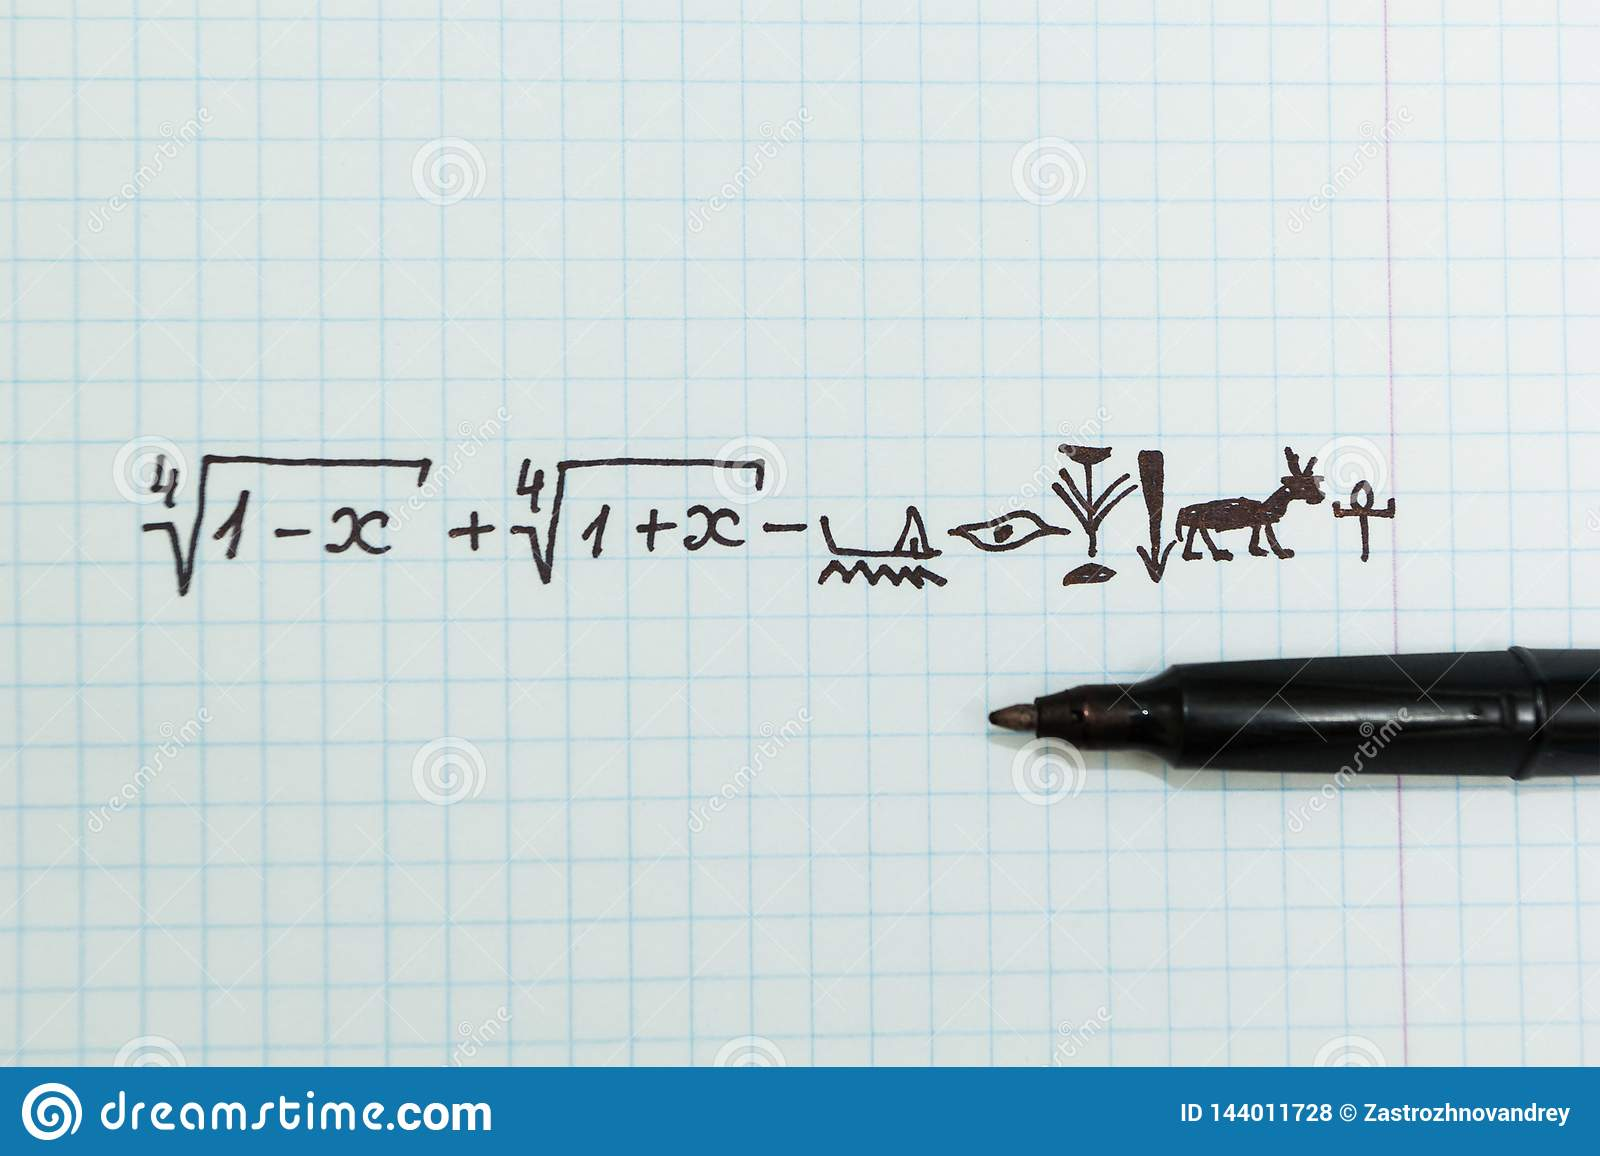 Complex mathematical examples in the notebook as Egyptian hieroglyphs